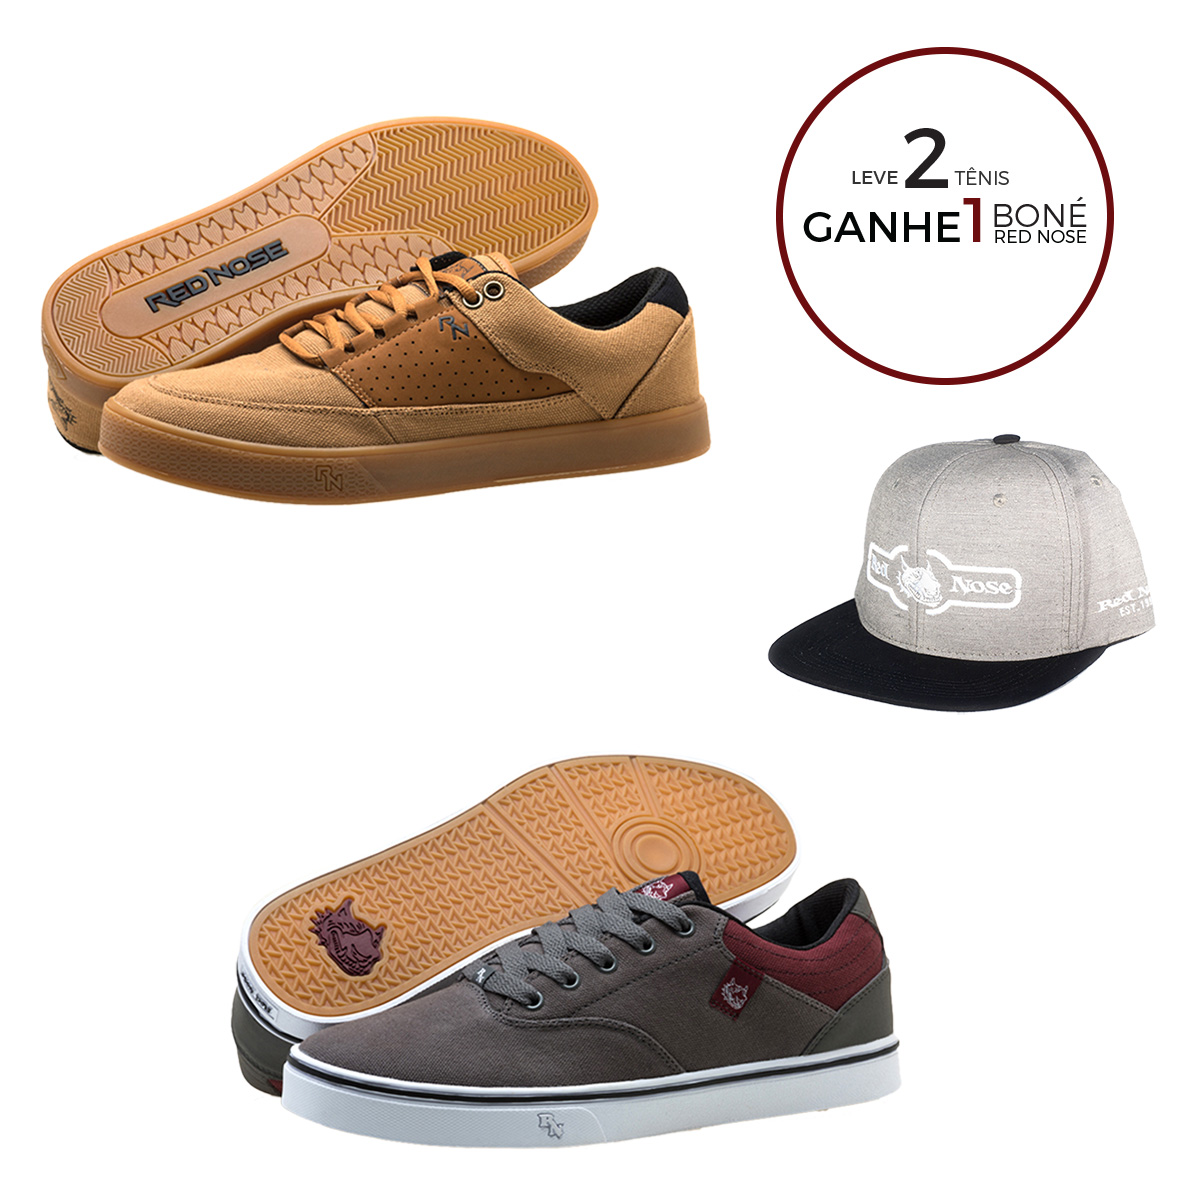 KIT Tênis Red Nose Kingpin + Arion + Boné Red Nose Snapback com ajuste Cinza e Marrom 37